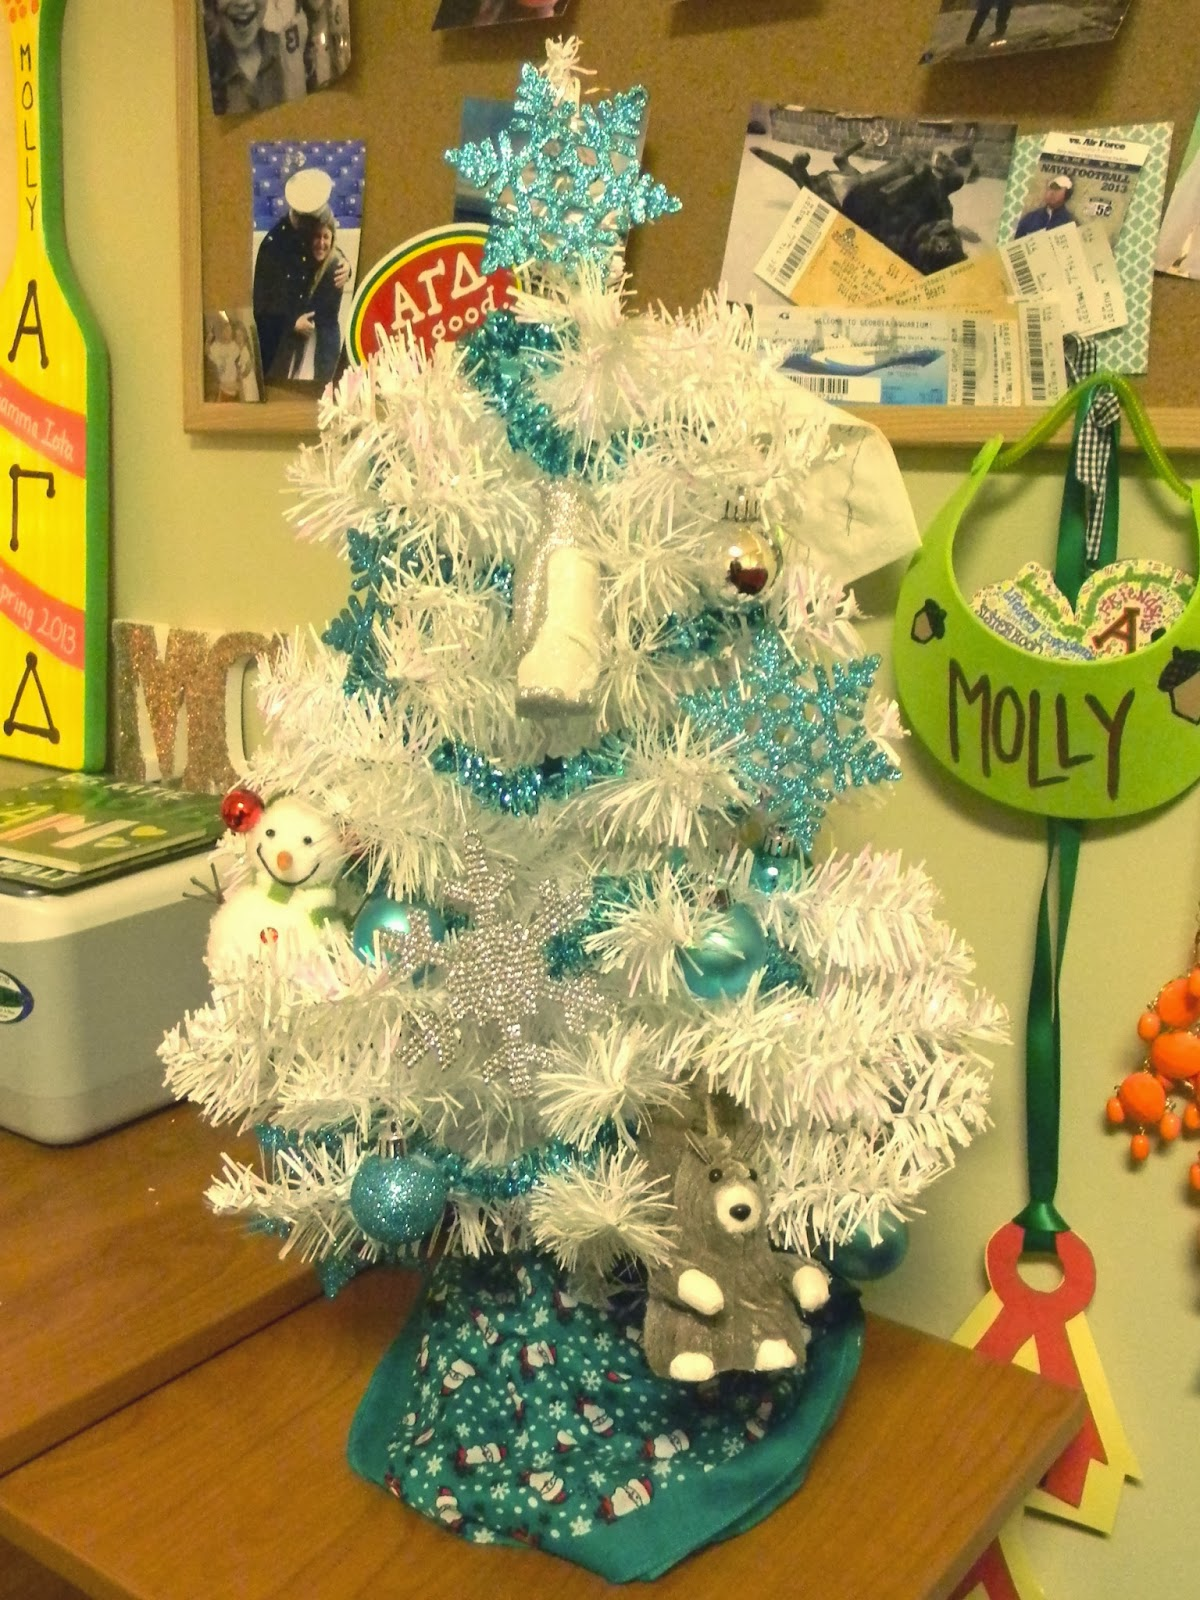 Decorating Ideas > Je Mappelle Molly Dorm Room Decor  Christmas Edition! ~ 231020_Dorm Room Christmas Decorations